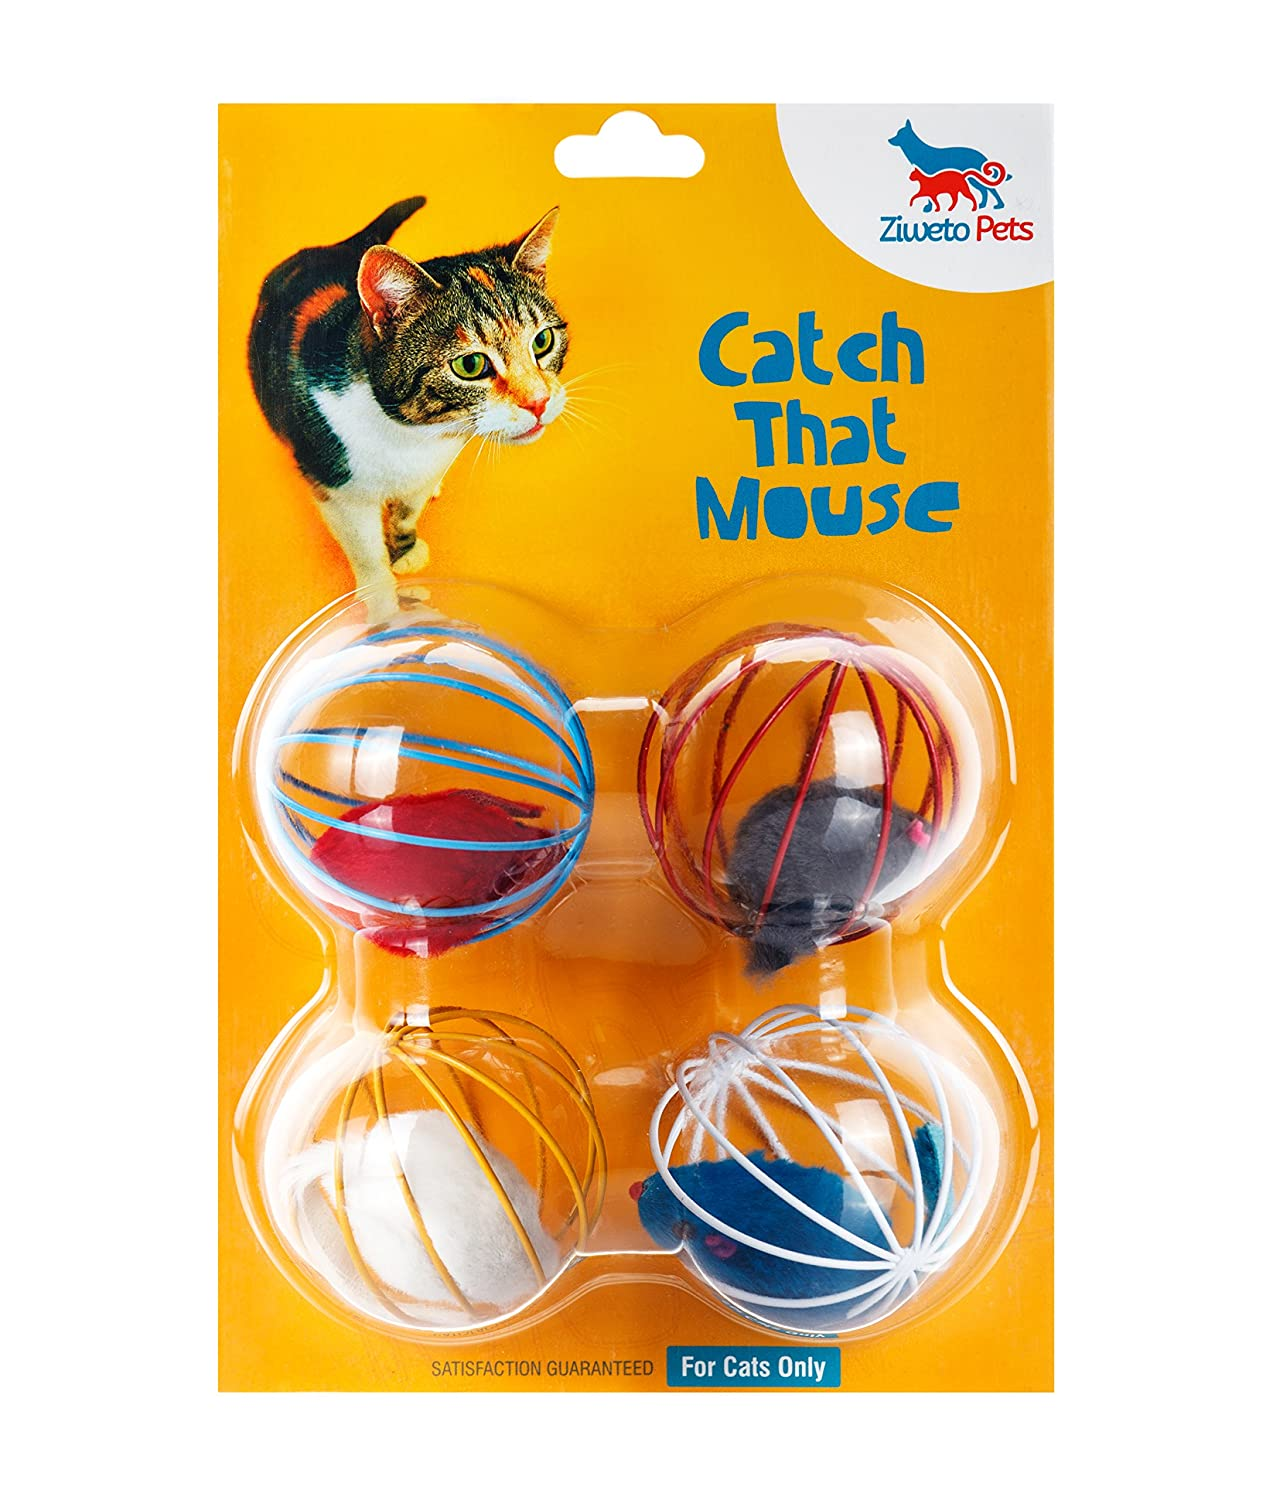 Ziweto Pets Megapack The Best Toy For Cats, 4 Cat Toys / Accessories To Play With The Cat